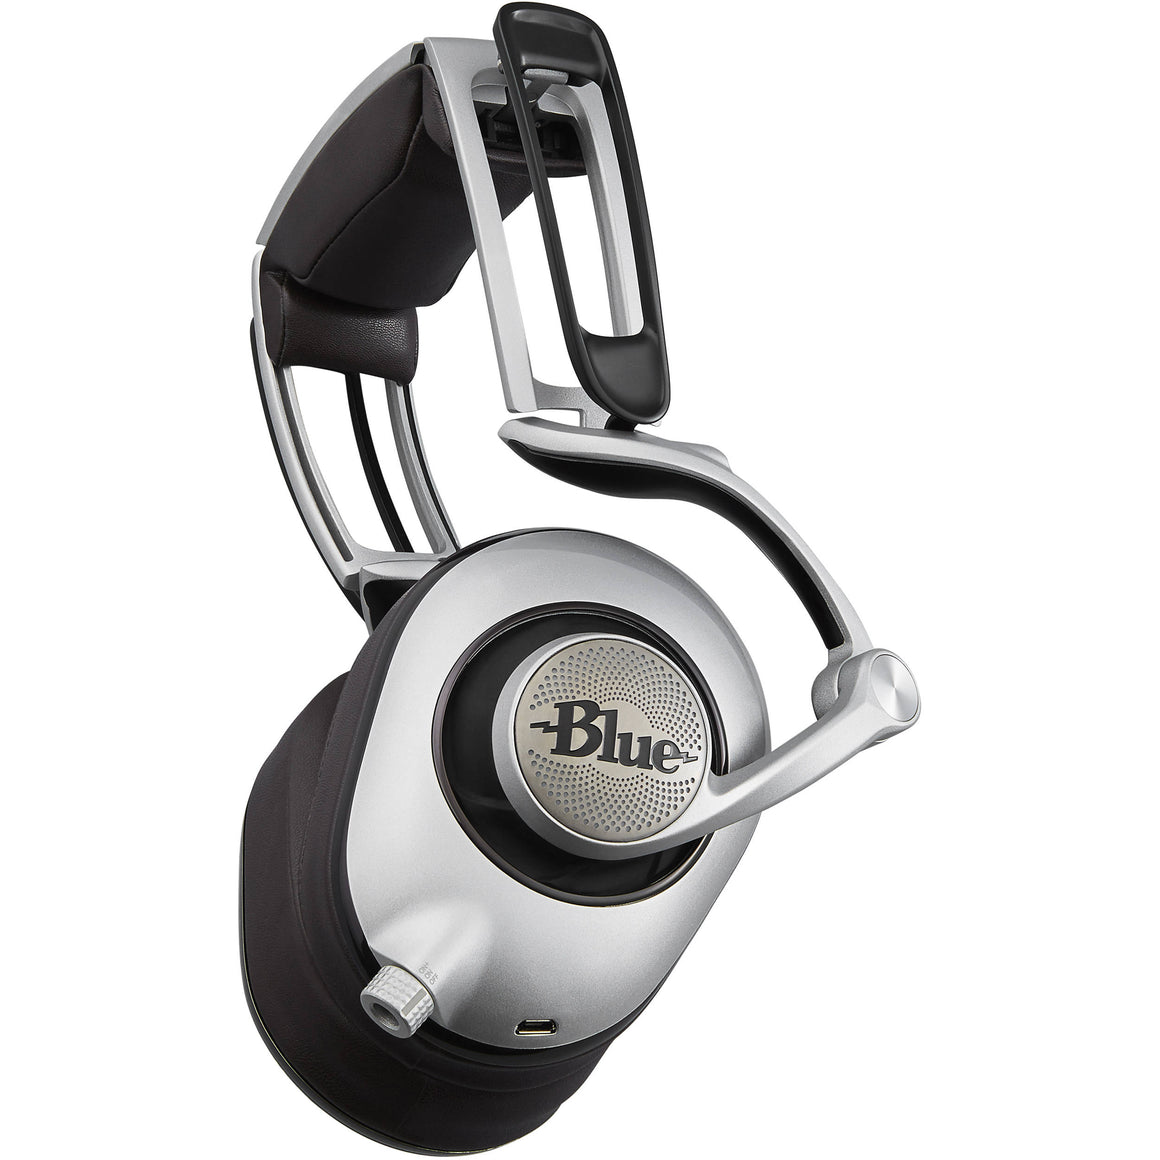 Blue Ella Over-Ear Headphones at Melbourne Hi Fi, Australia